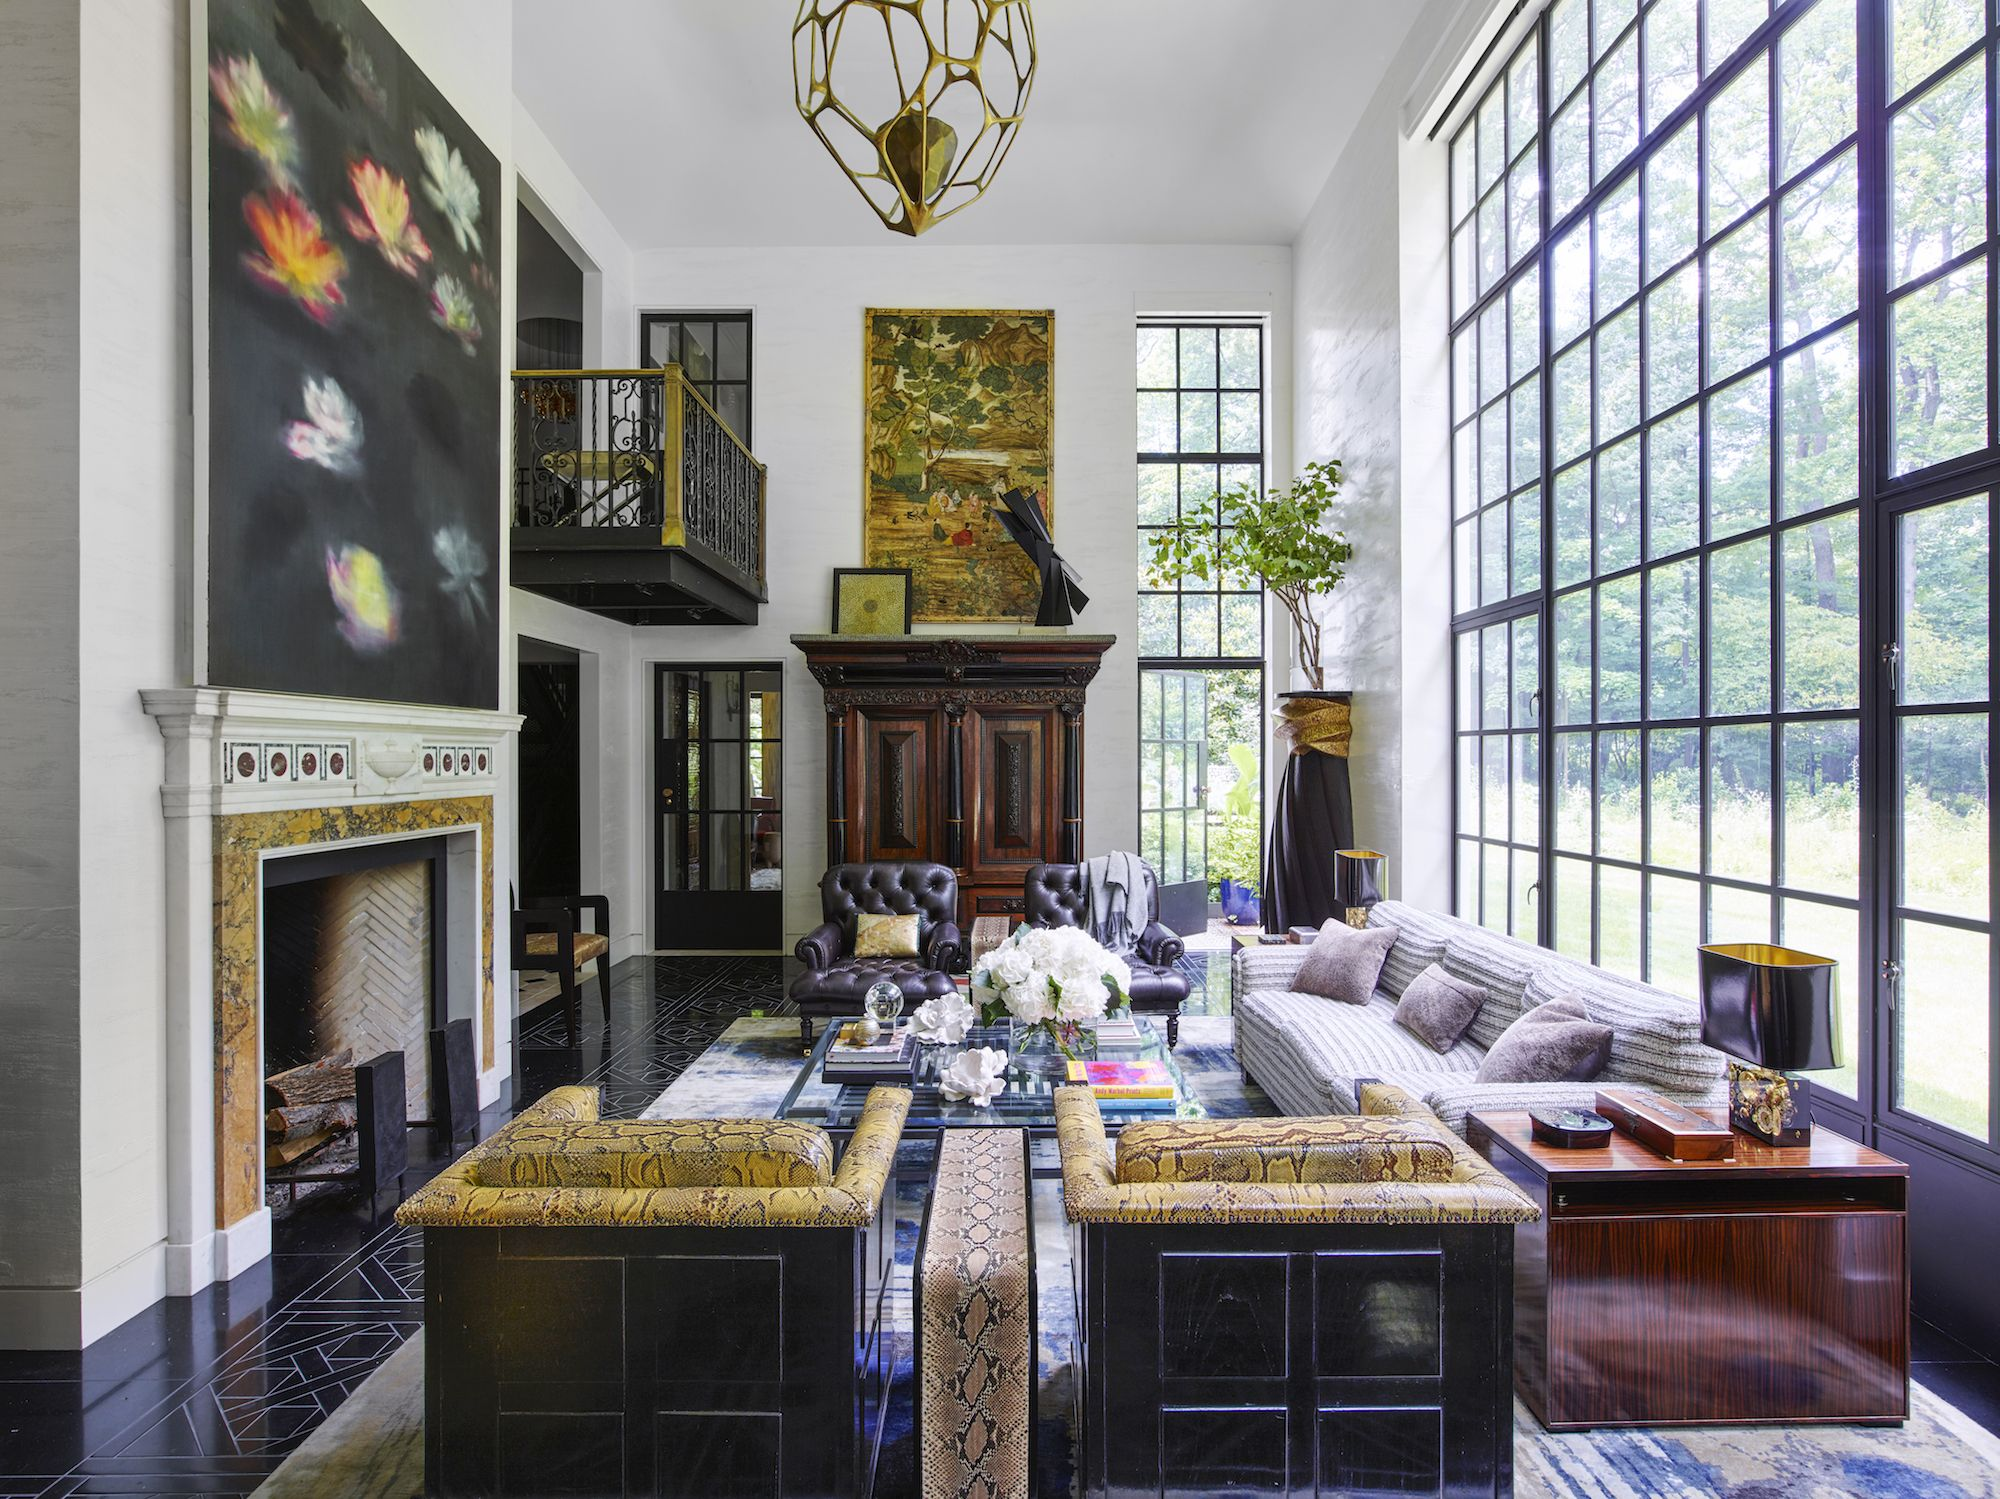 House Tour: A Vibrant, Art Filled Ranch House In Upstate New York